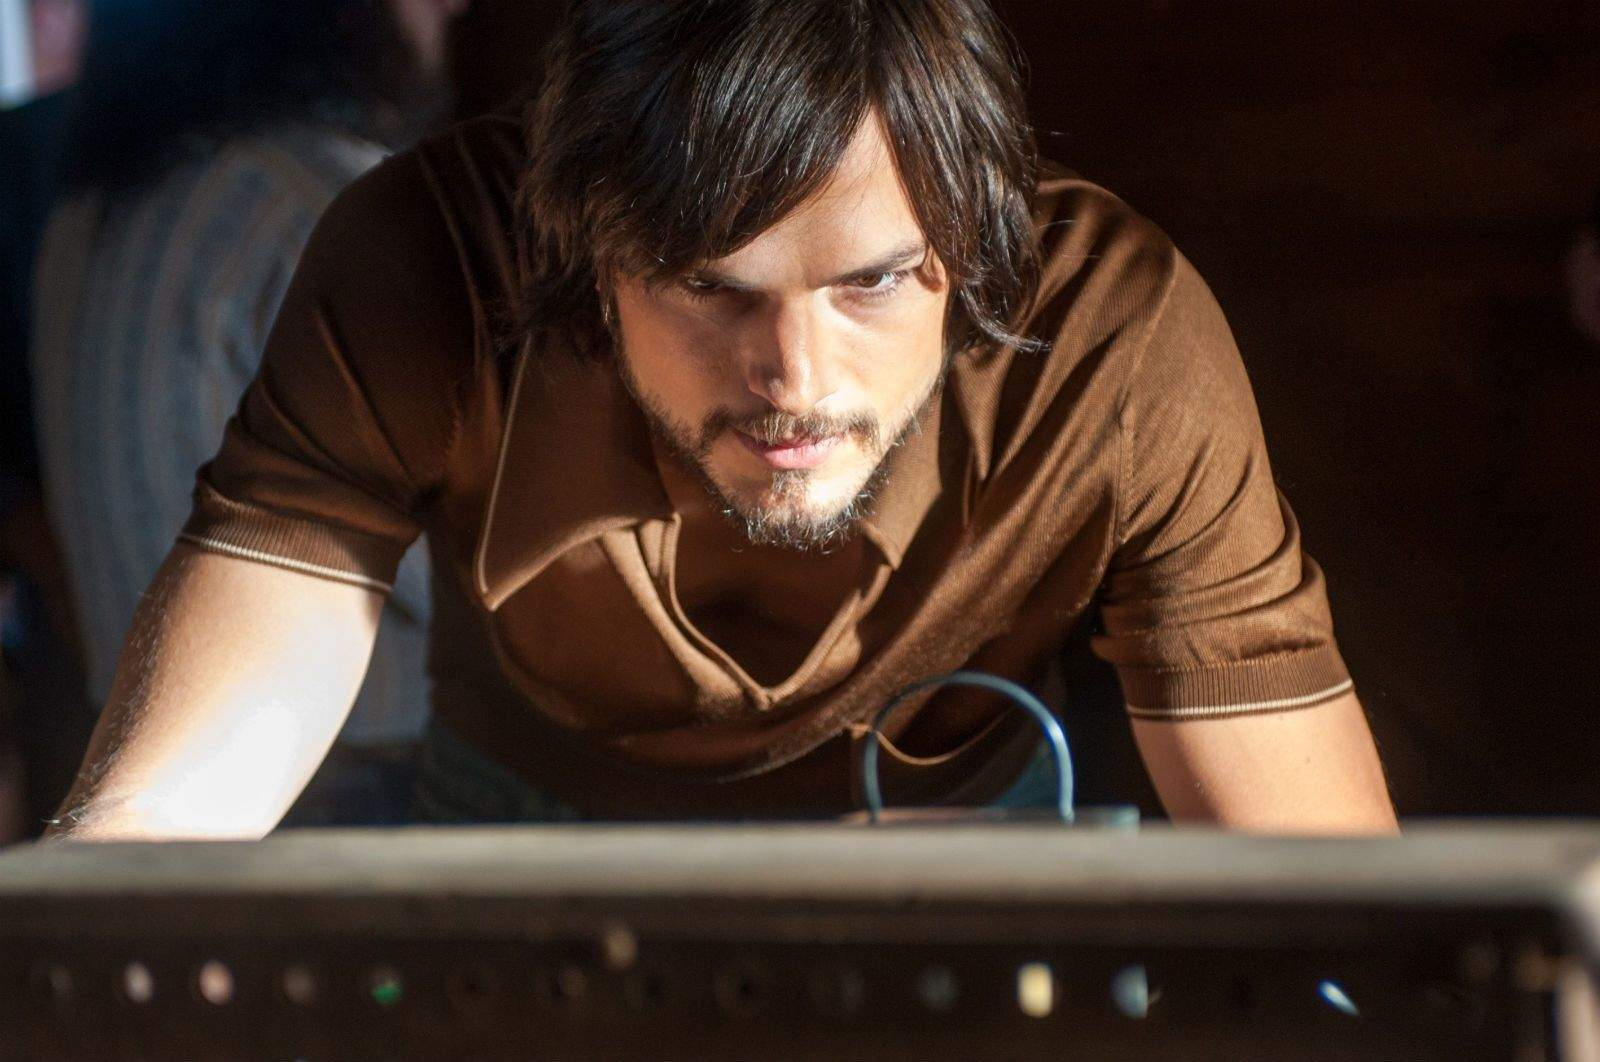 Ashton_Kutcher_in_Jobs